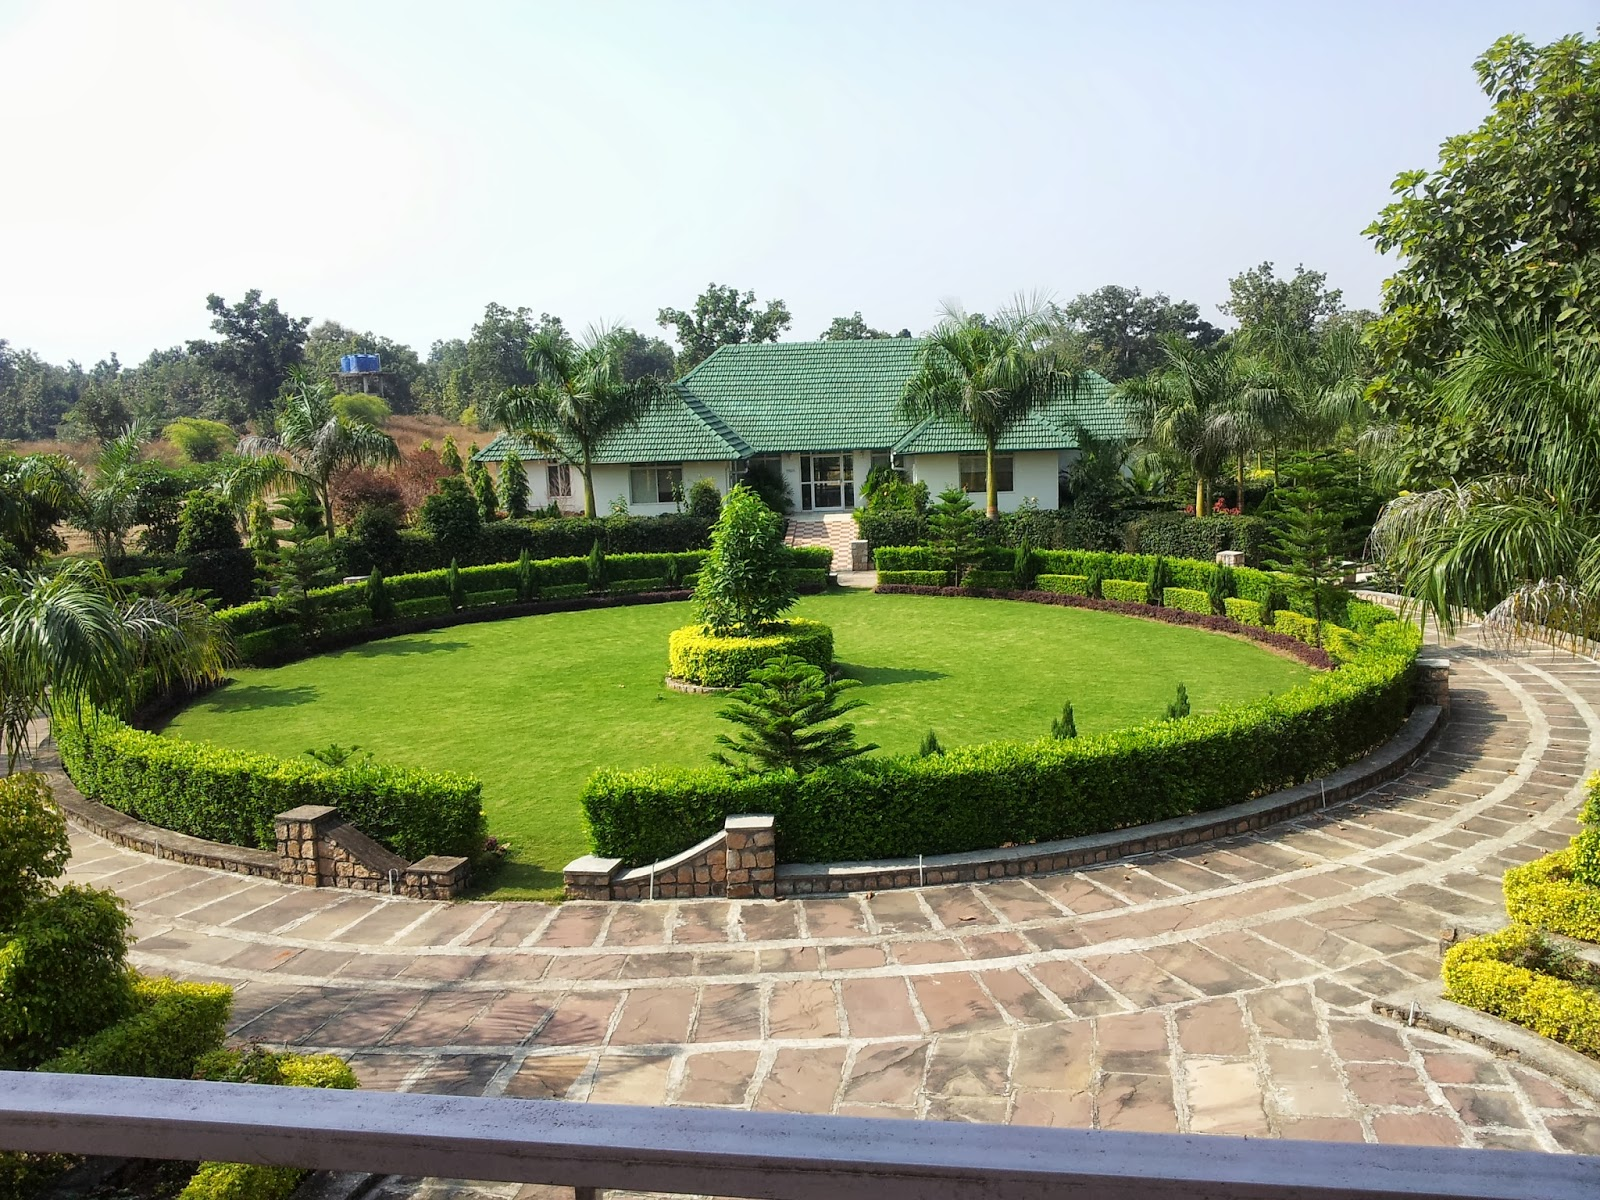 Vvillage_machaan_resorts_pench_national_park03